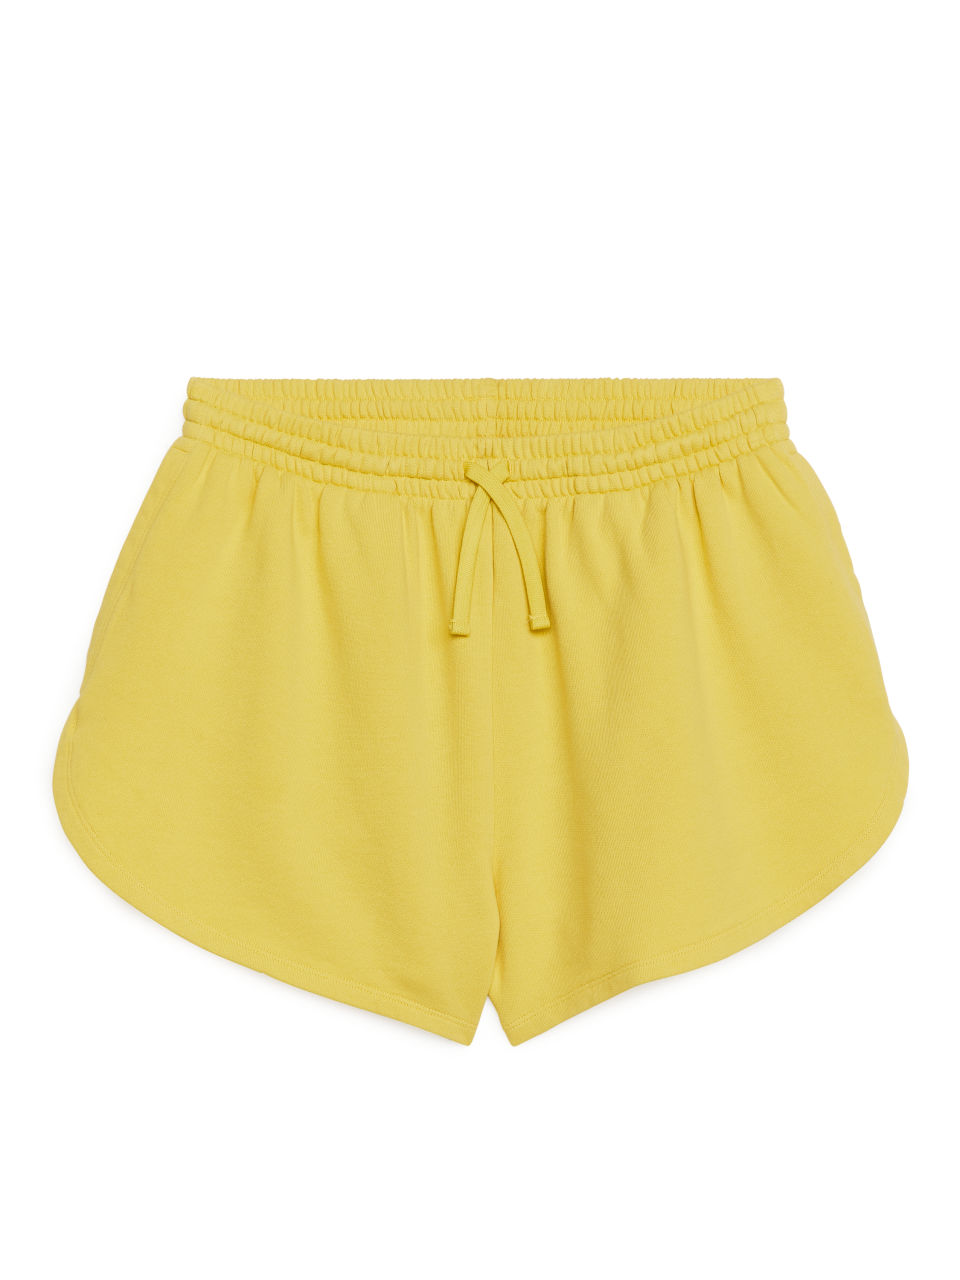 French Terry Shorts - Yellow